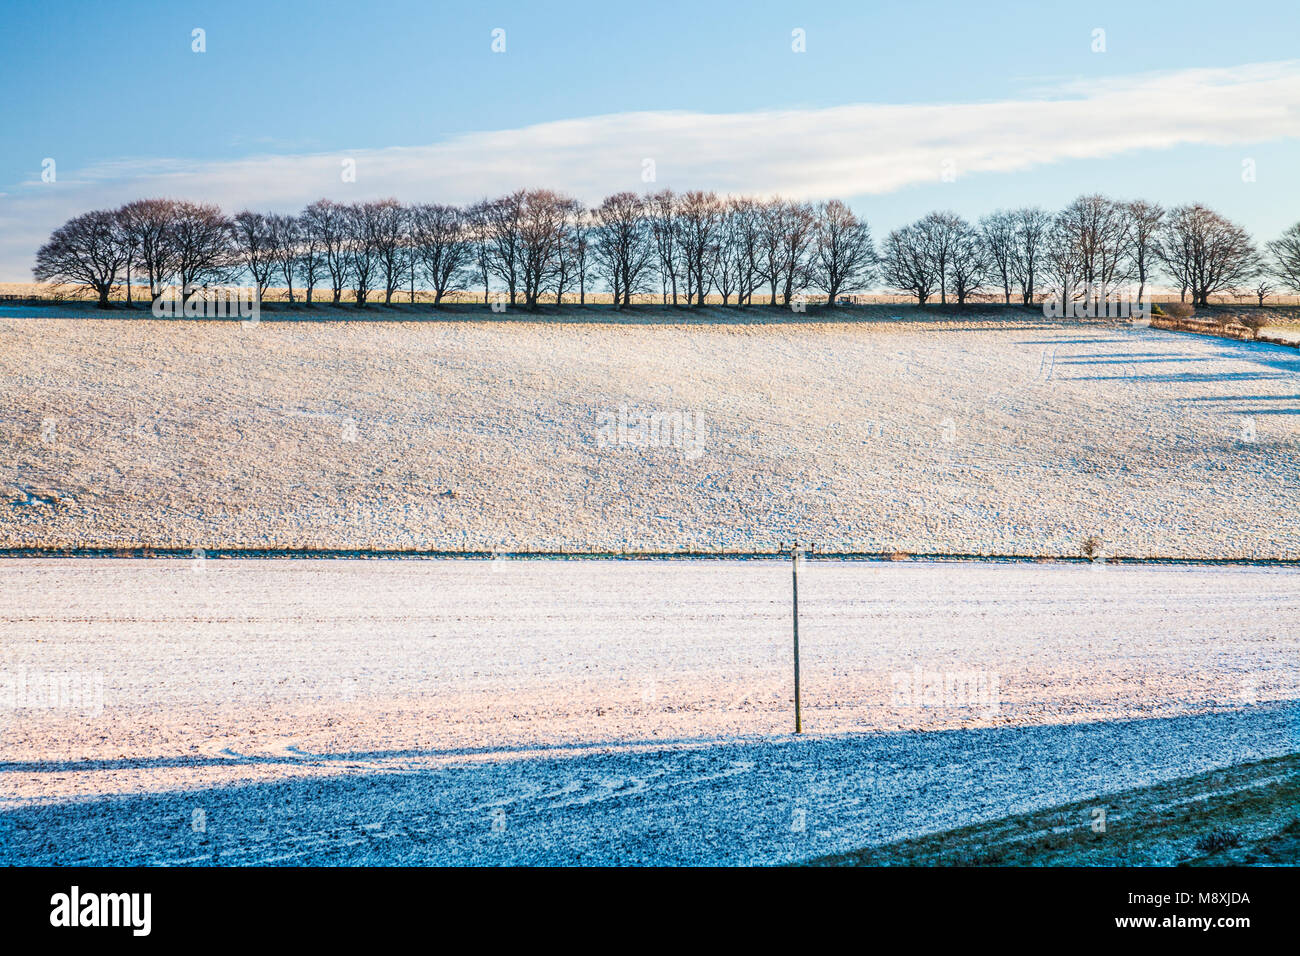 A frosty winter's morning on the Marlborough Downs. - Stock Image